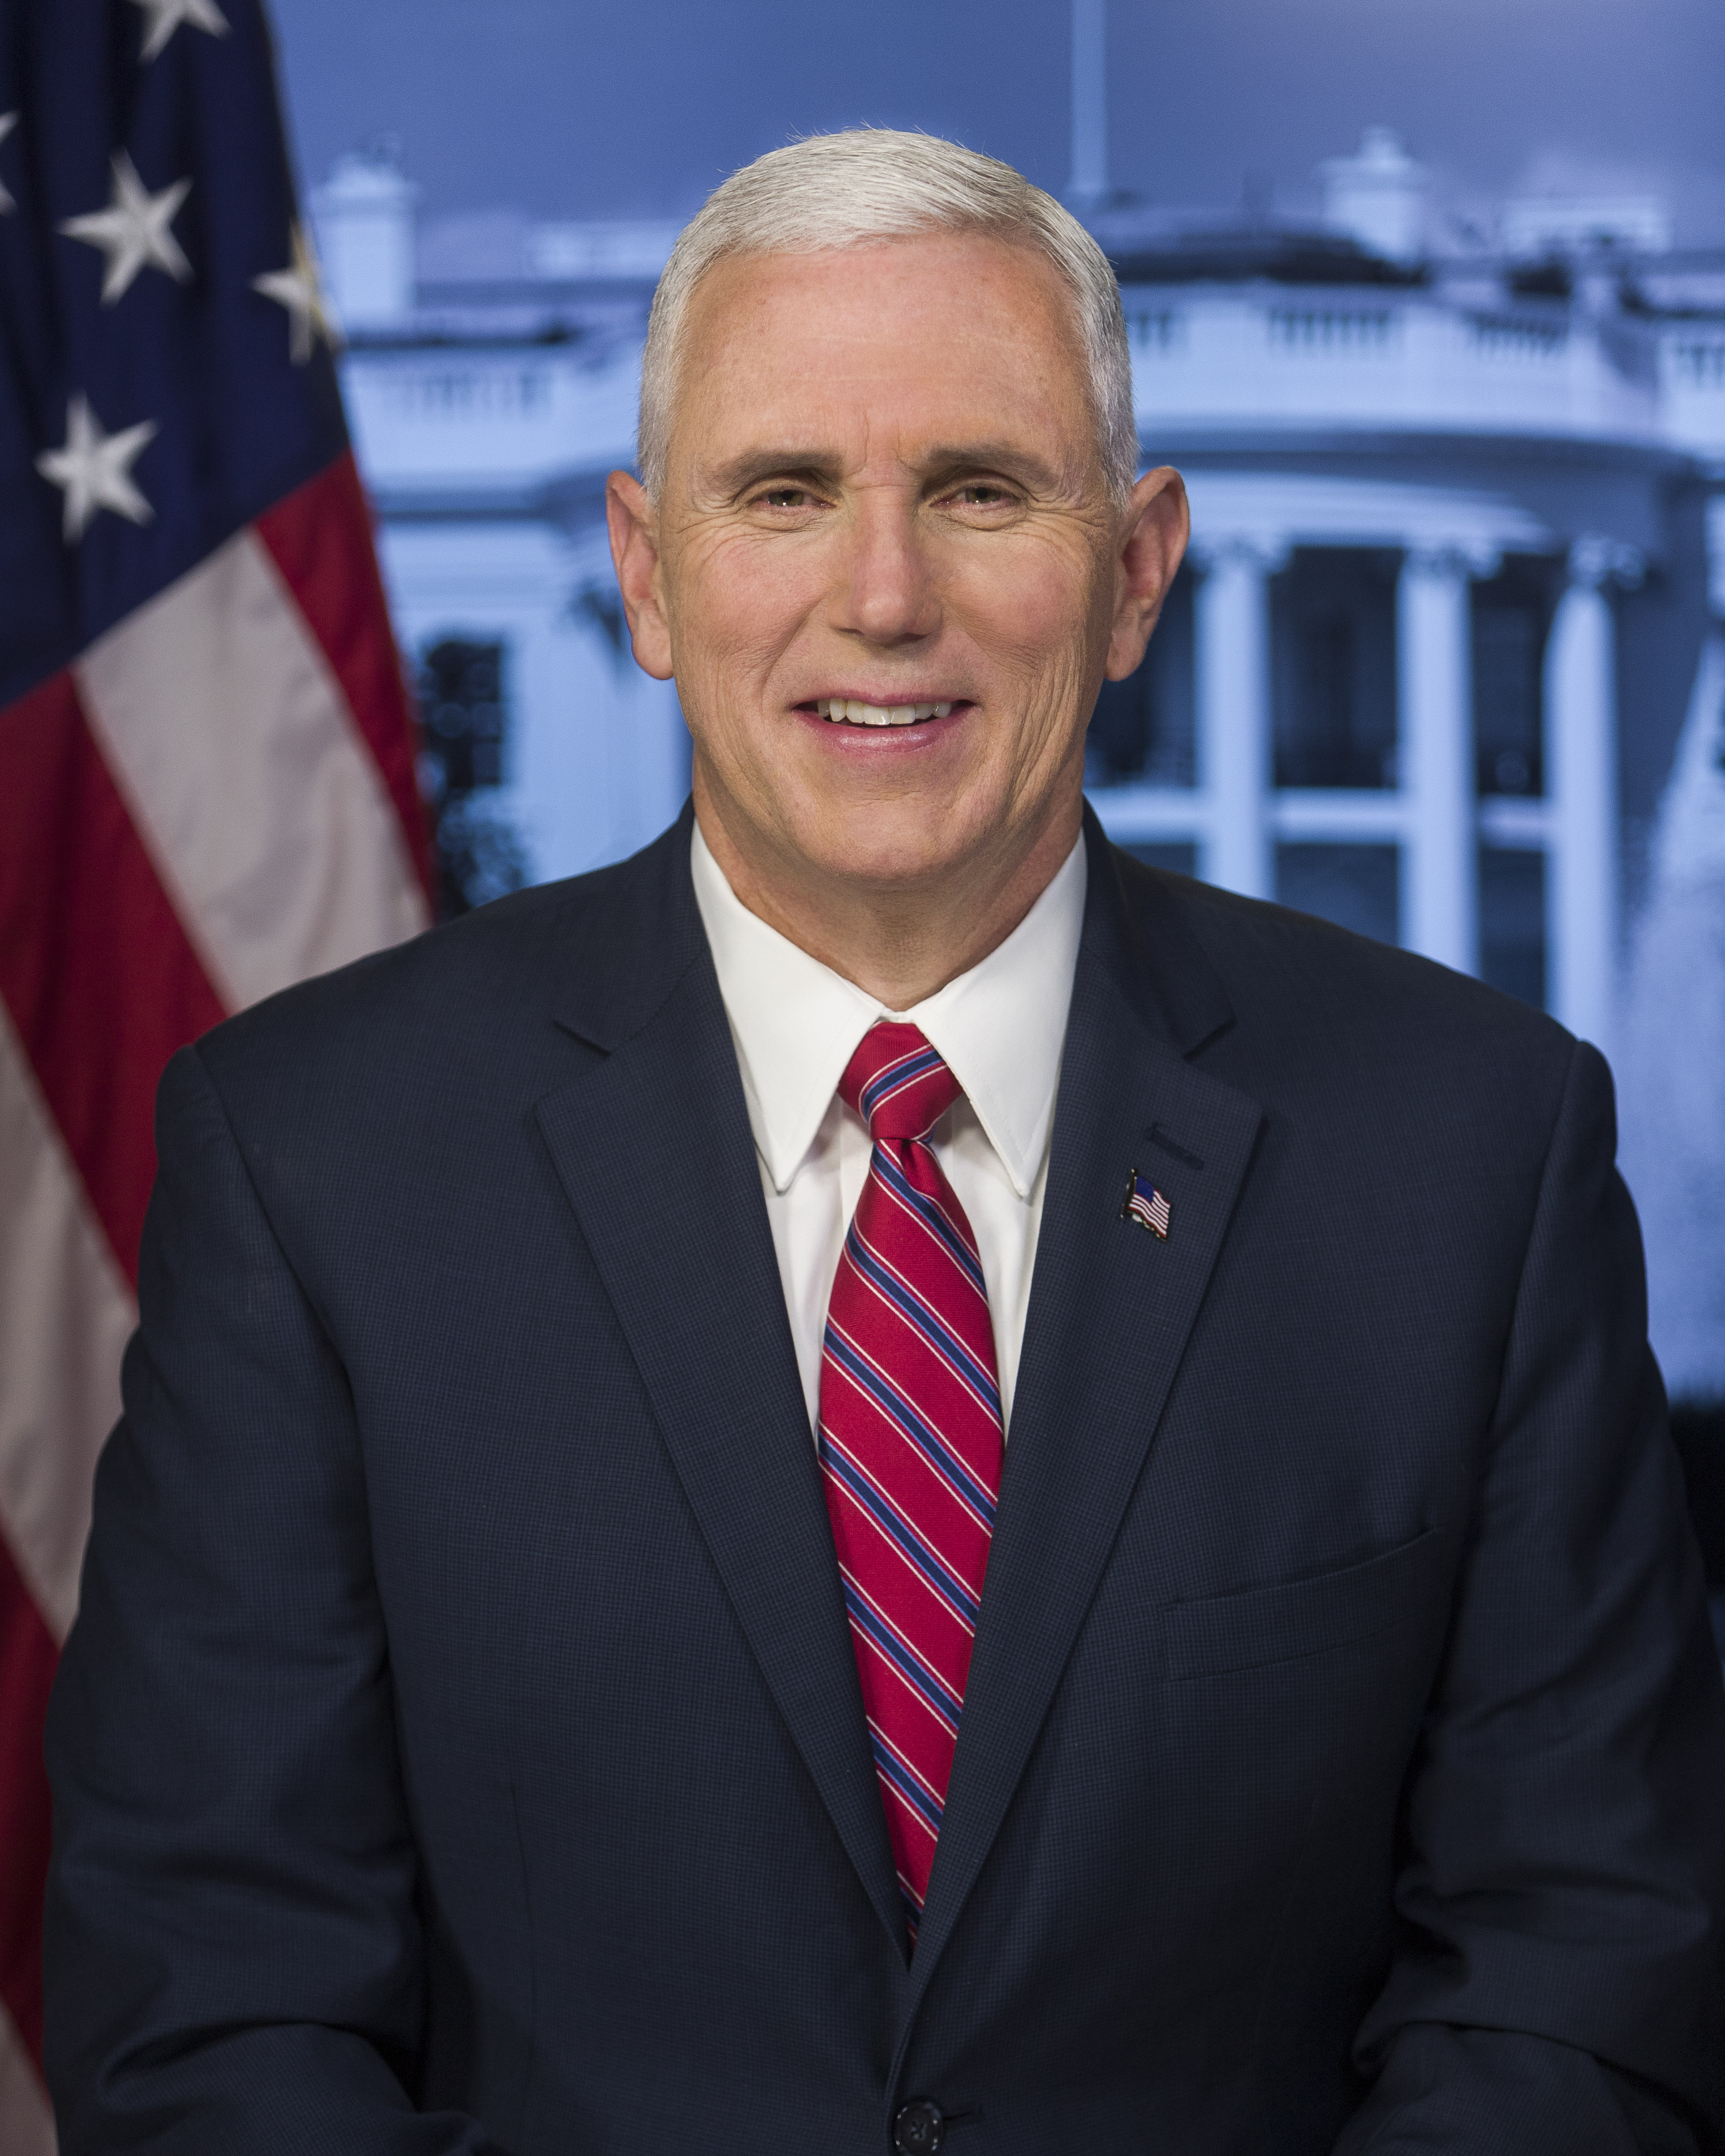 image of Mike Pence